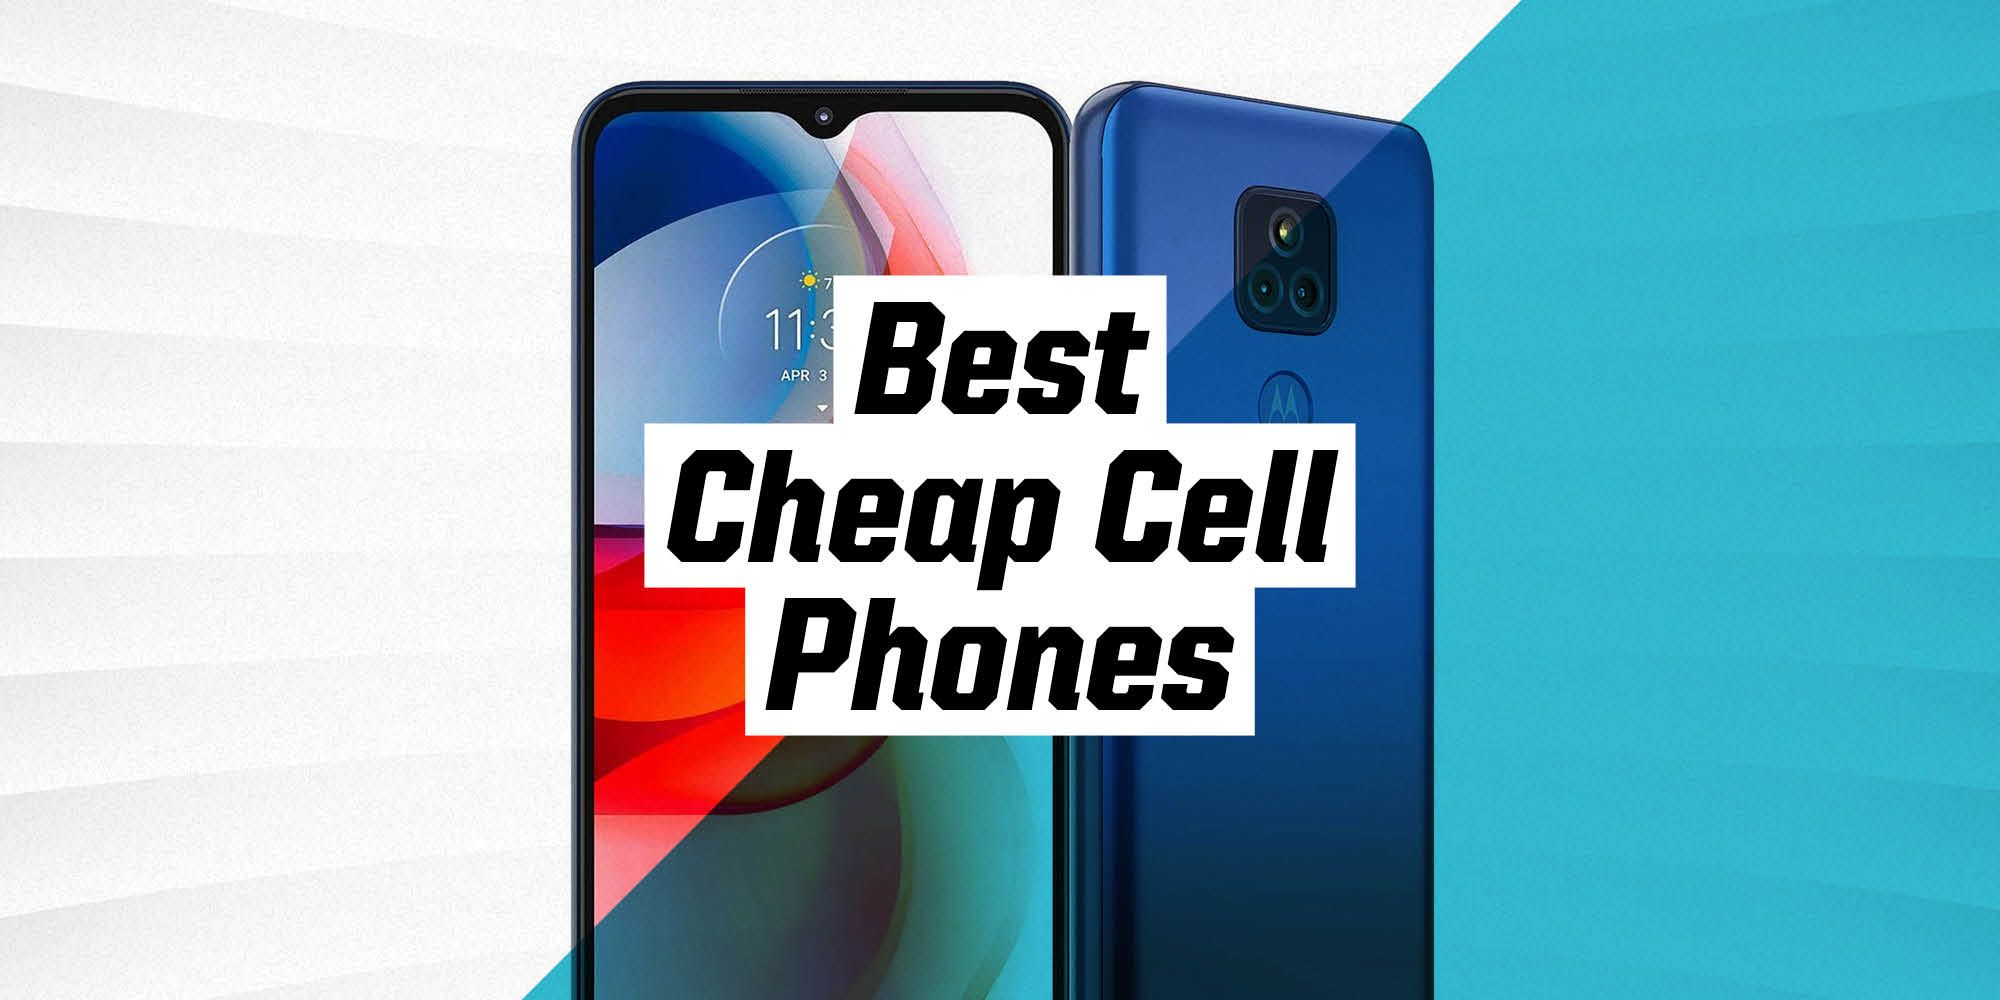 The 8 Best Cheap Cell Phones to Buy Right Now